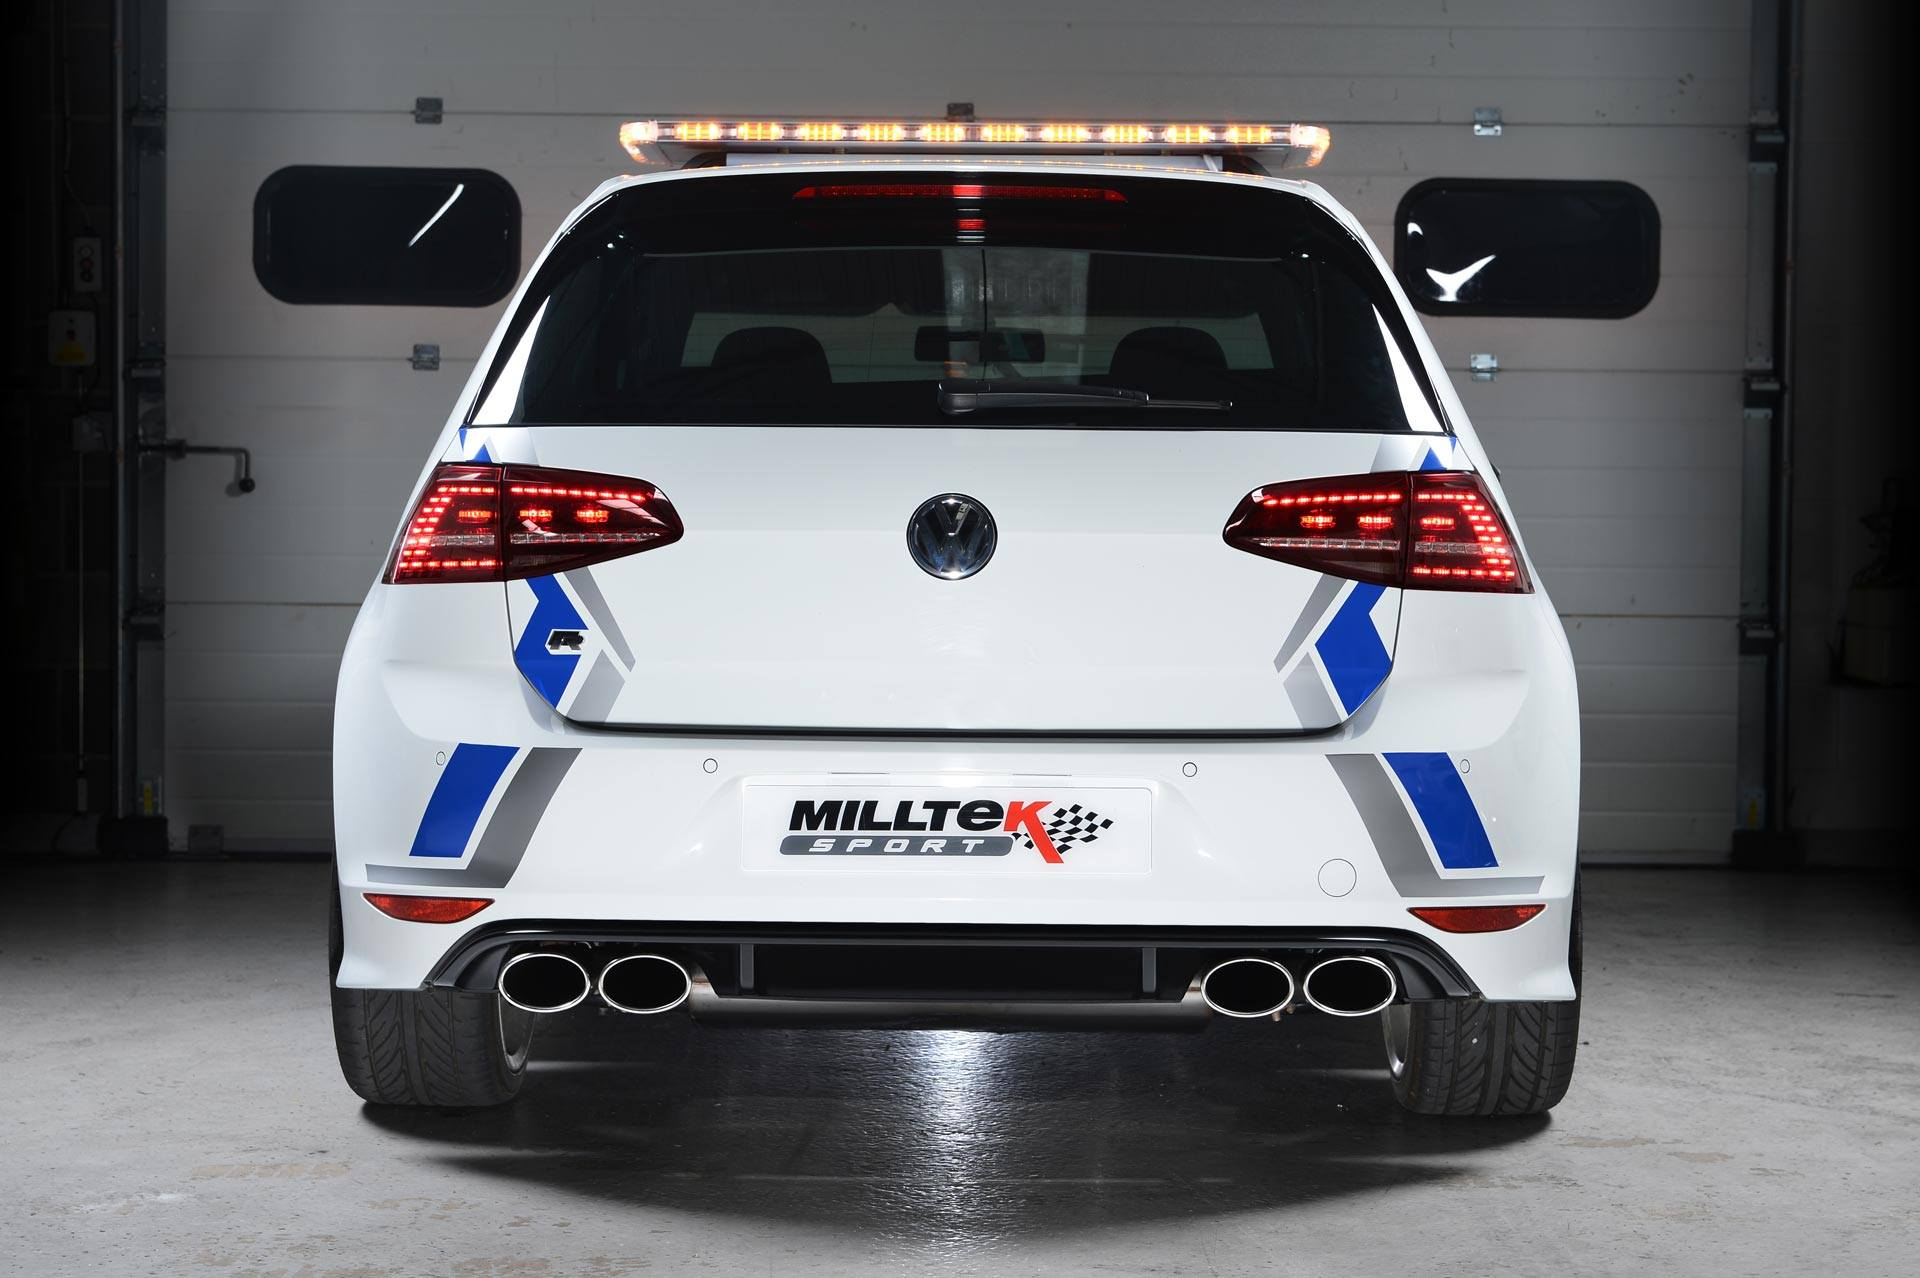 Fiesta Rs 2017 >> Volkswagen Golf 7 R Gets Sports Exhaust System from Milltek - autoevolution